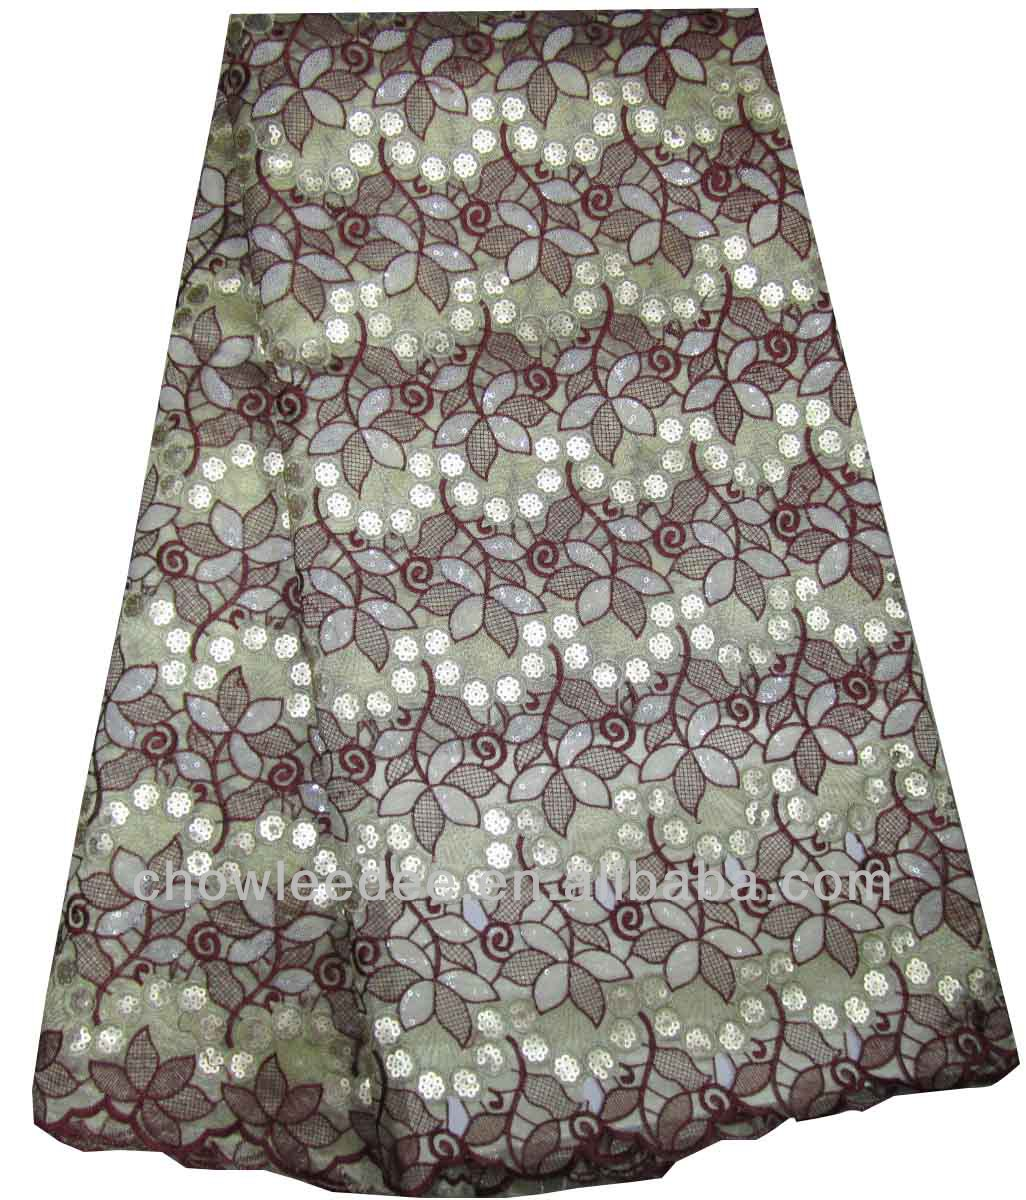 CL8221-1 African embroidery cotton lace five yards each piece with beaded or flowers